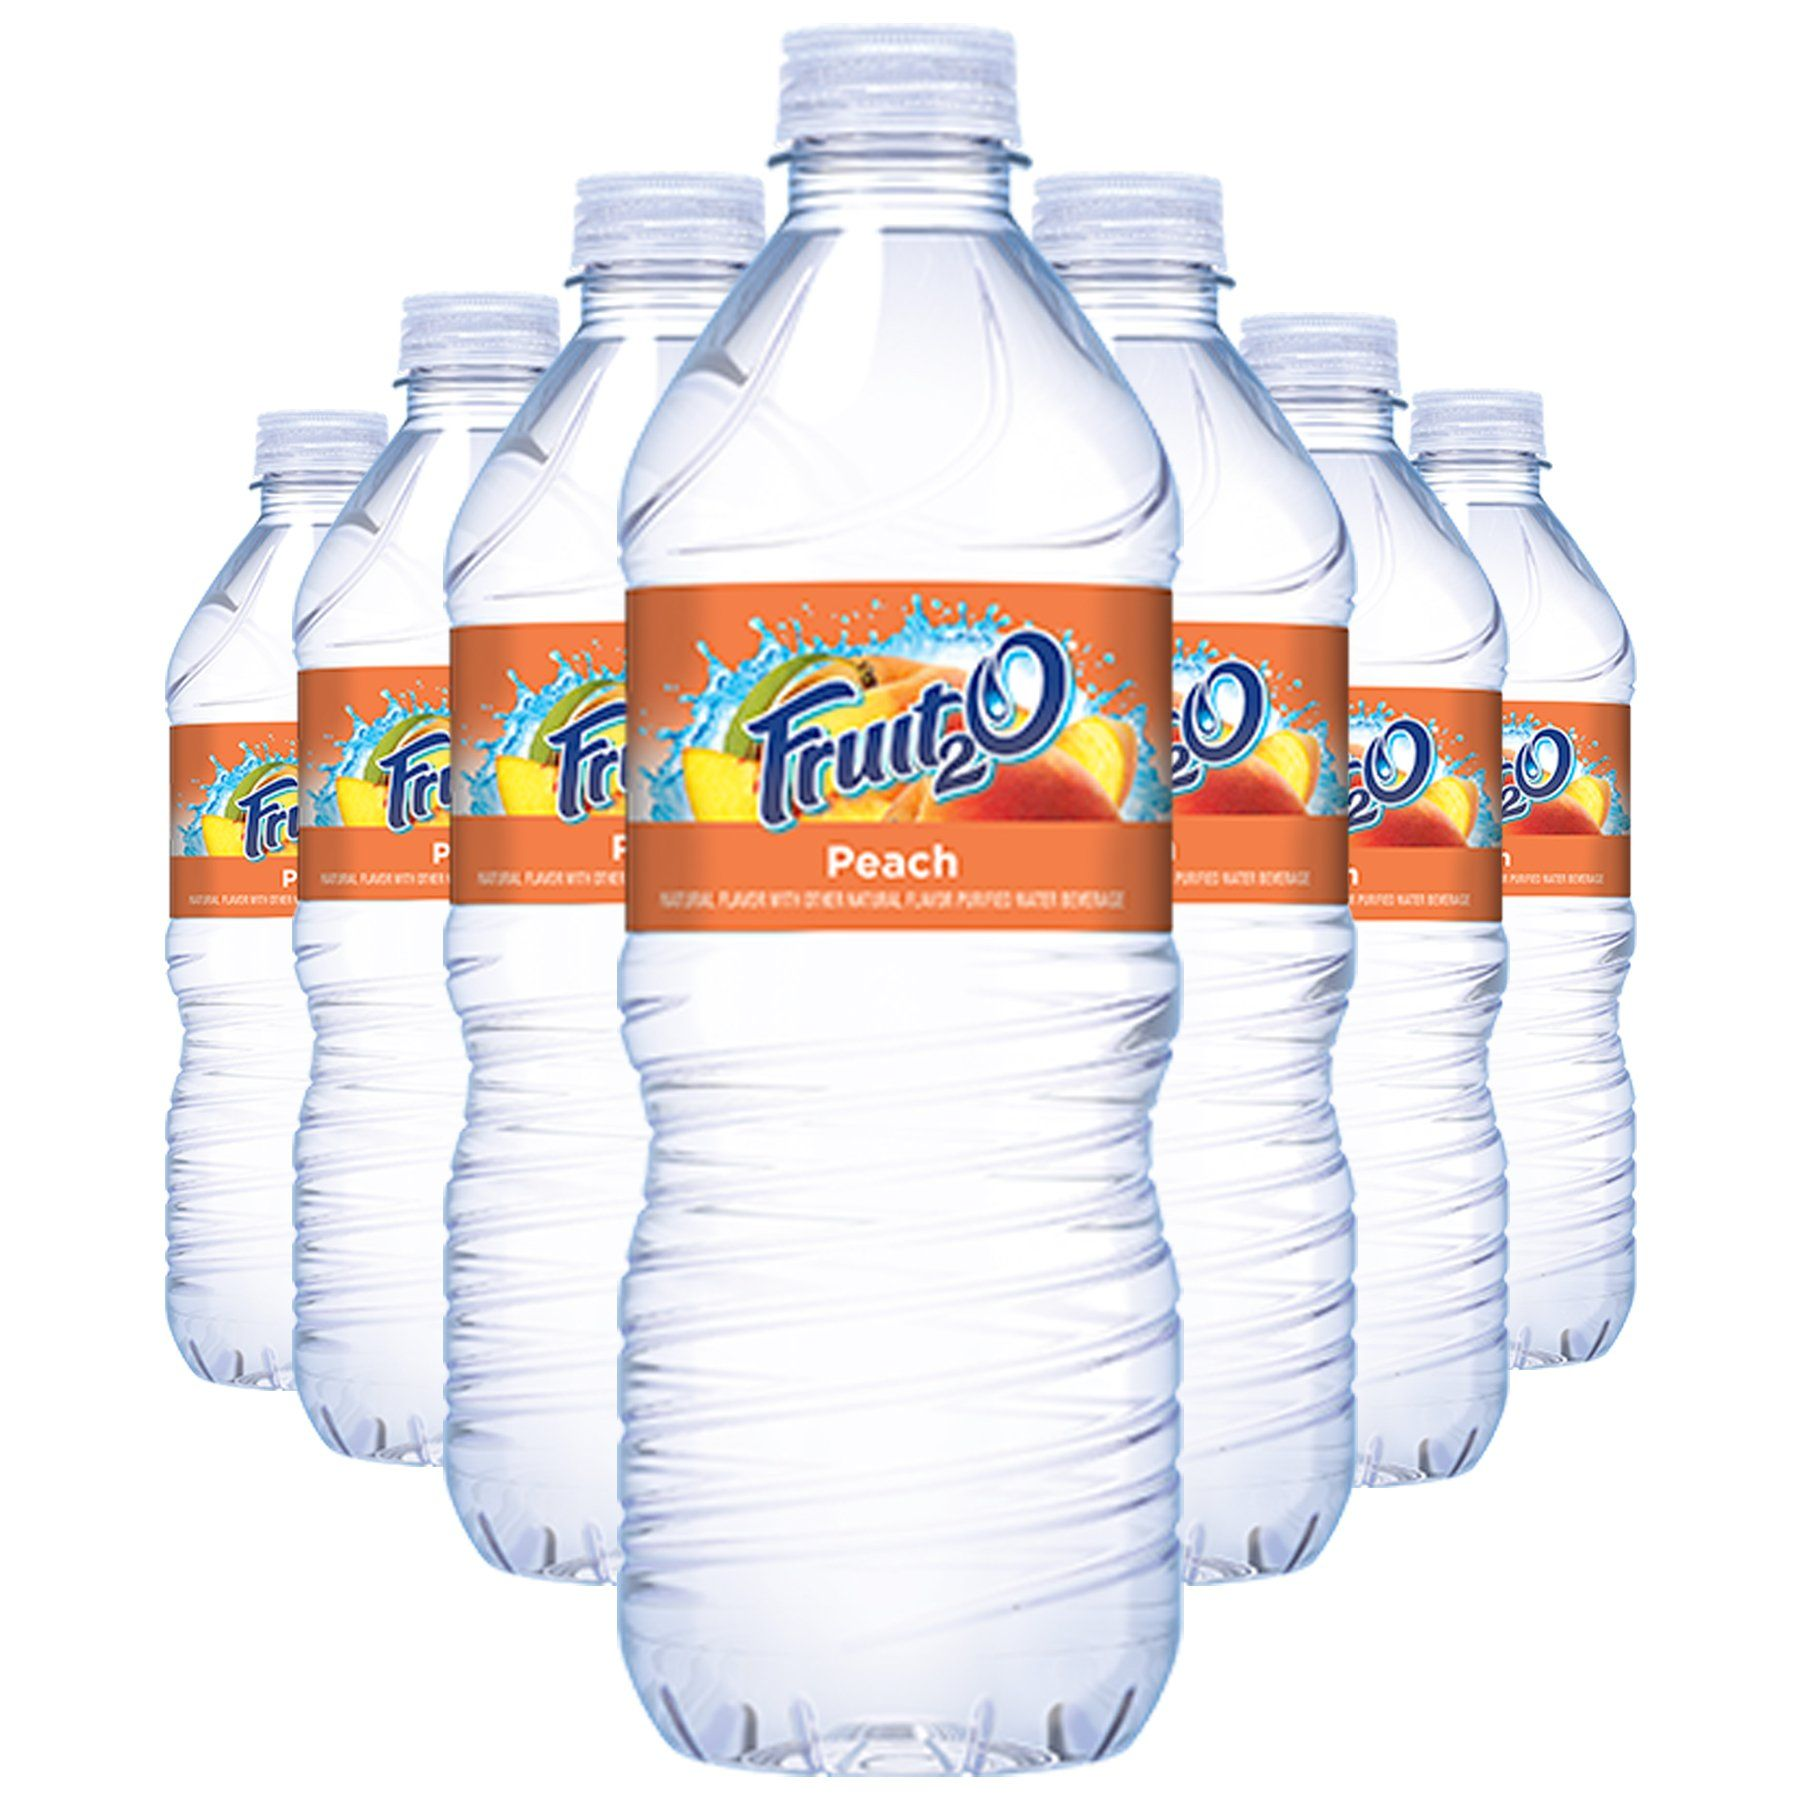 Fruit2o Peach Flavored Water 16 9 Oz Plastic Bottles 12 Pack Click Image For More Details This Is An Affiliate Flavored Water Polar Bottle Plastic Bottles